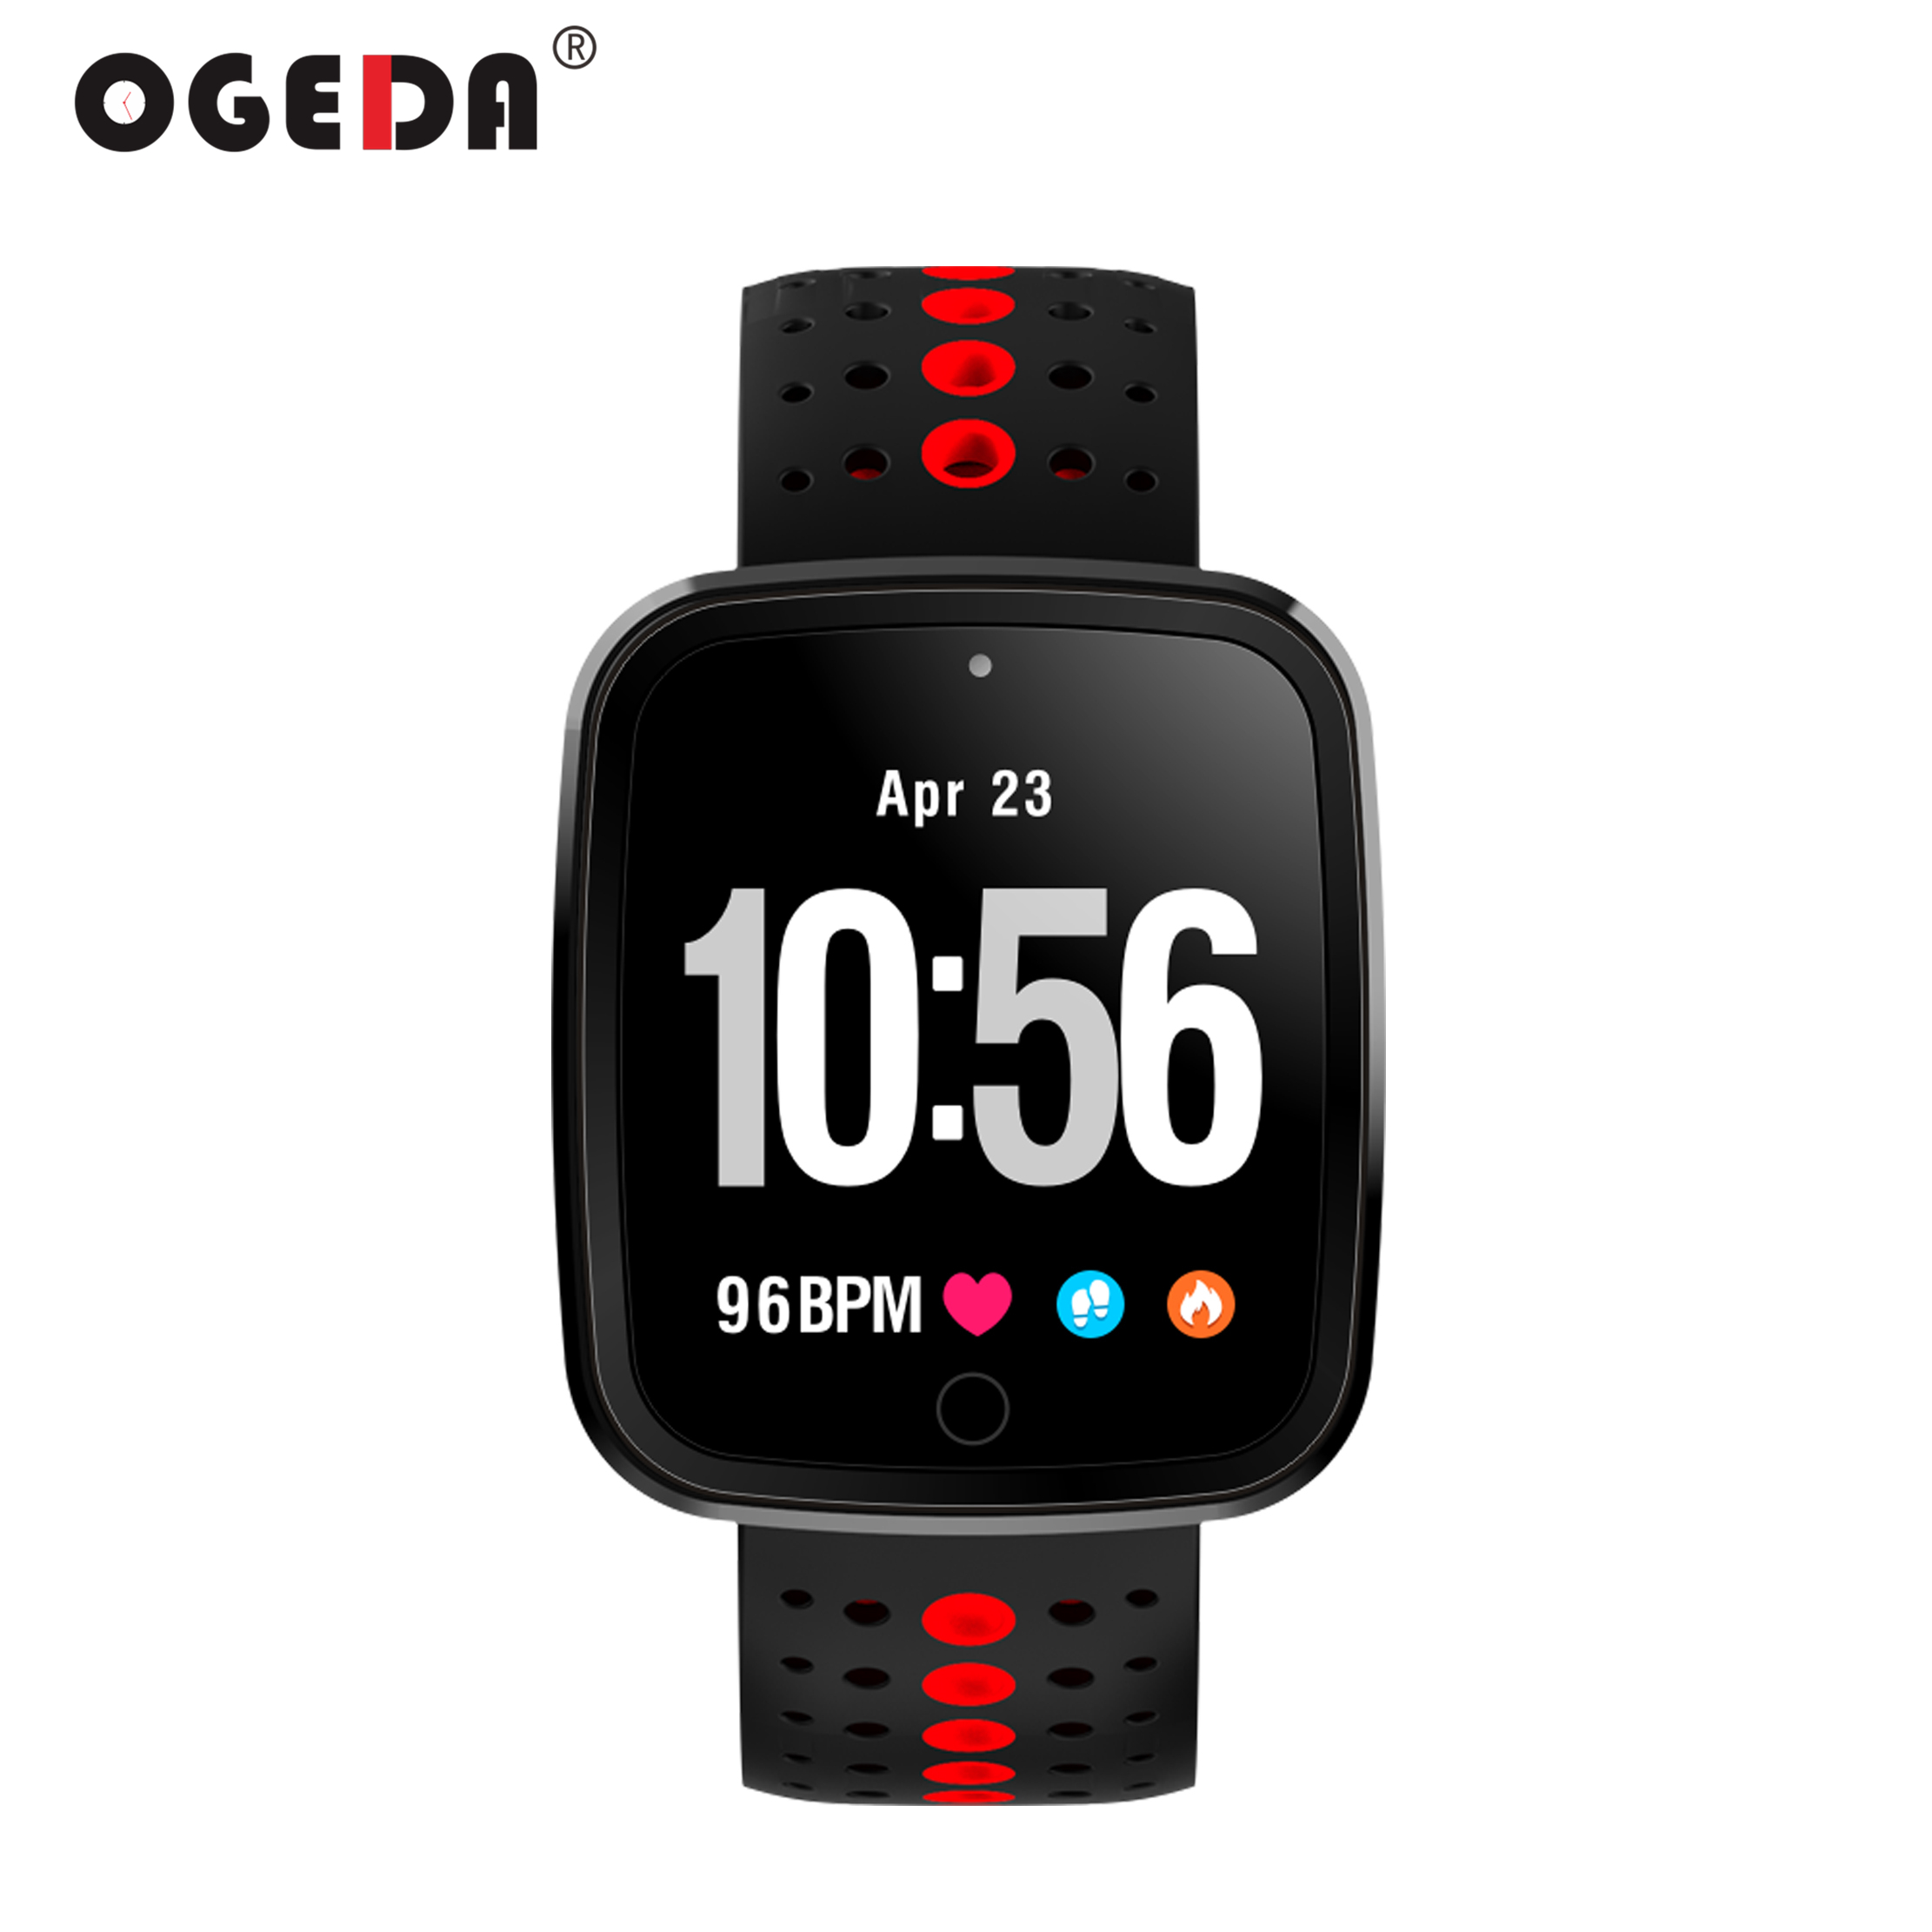 OGEDA Sports Men Smart Watch Intelligent Fitness Tracker Smart Wristband Bracelet for Android IOS Heart Rate Monitor Color OLED id115 smart watch fitness sport wristband watch for ios android iphone heart rate monitor tracker men women watch oled bracelet